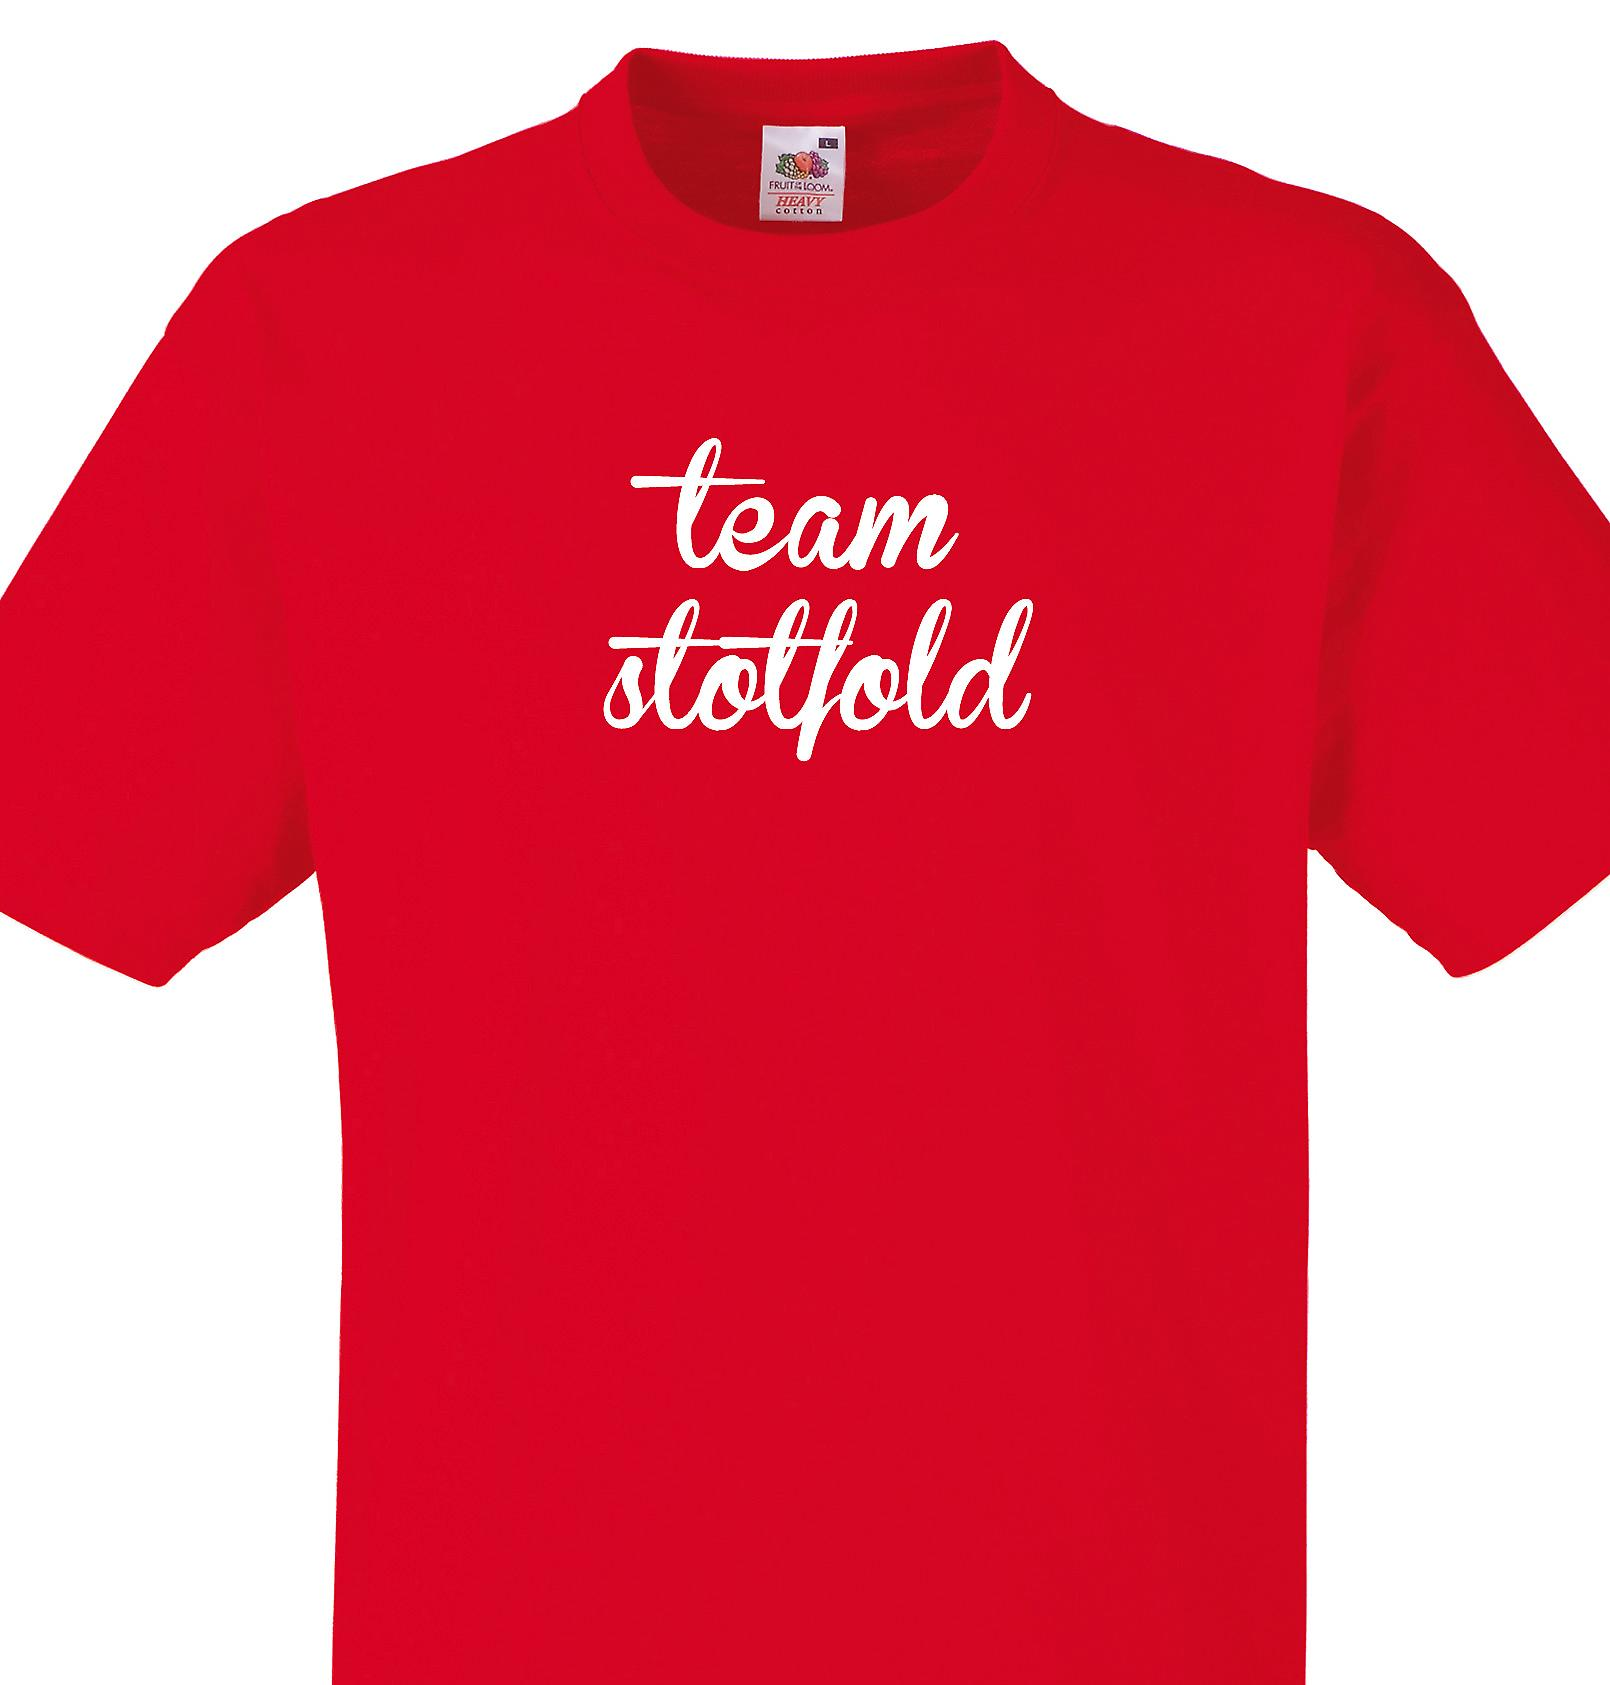 Team Stotfold Red T shirt